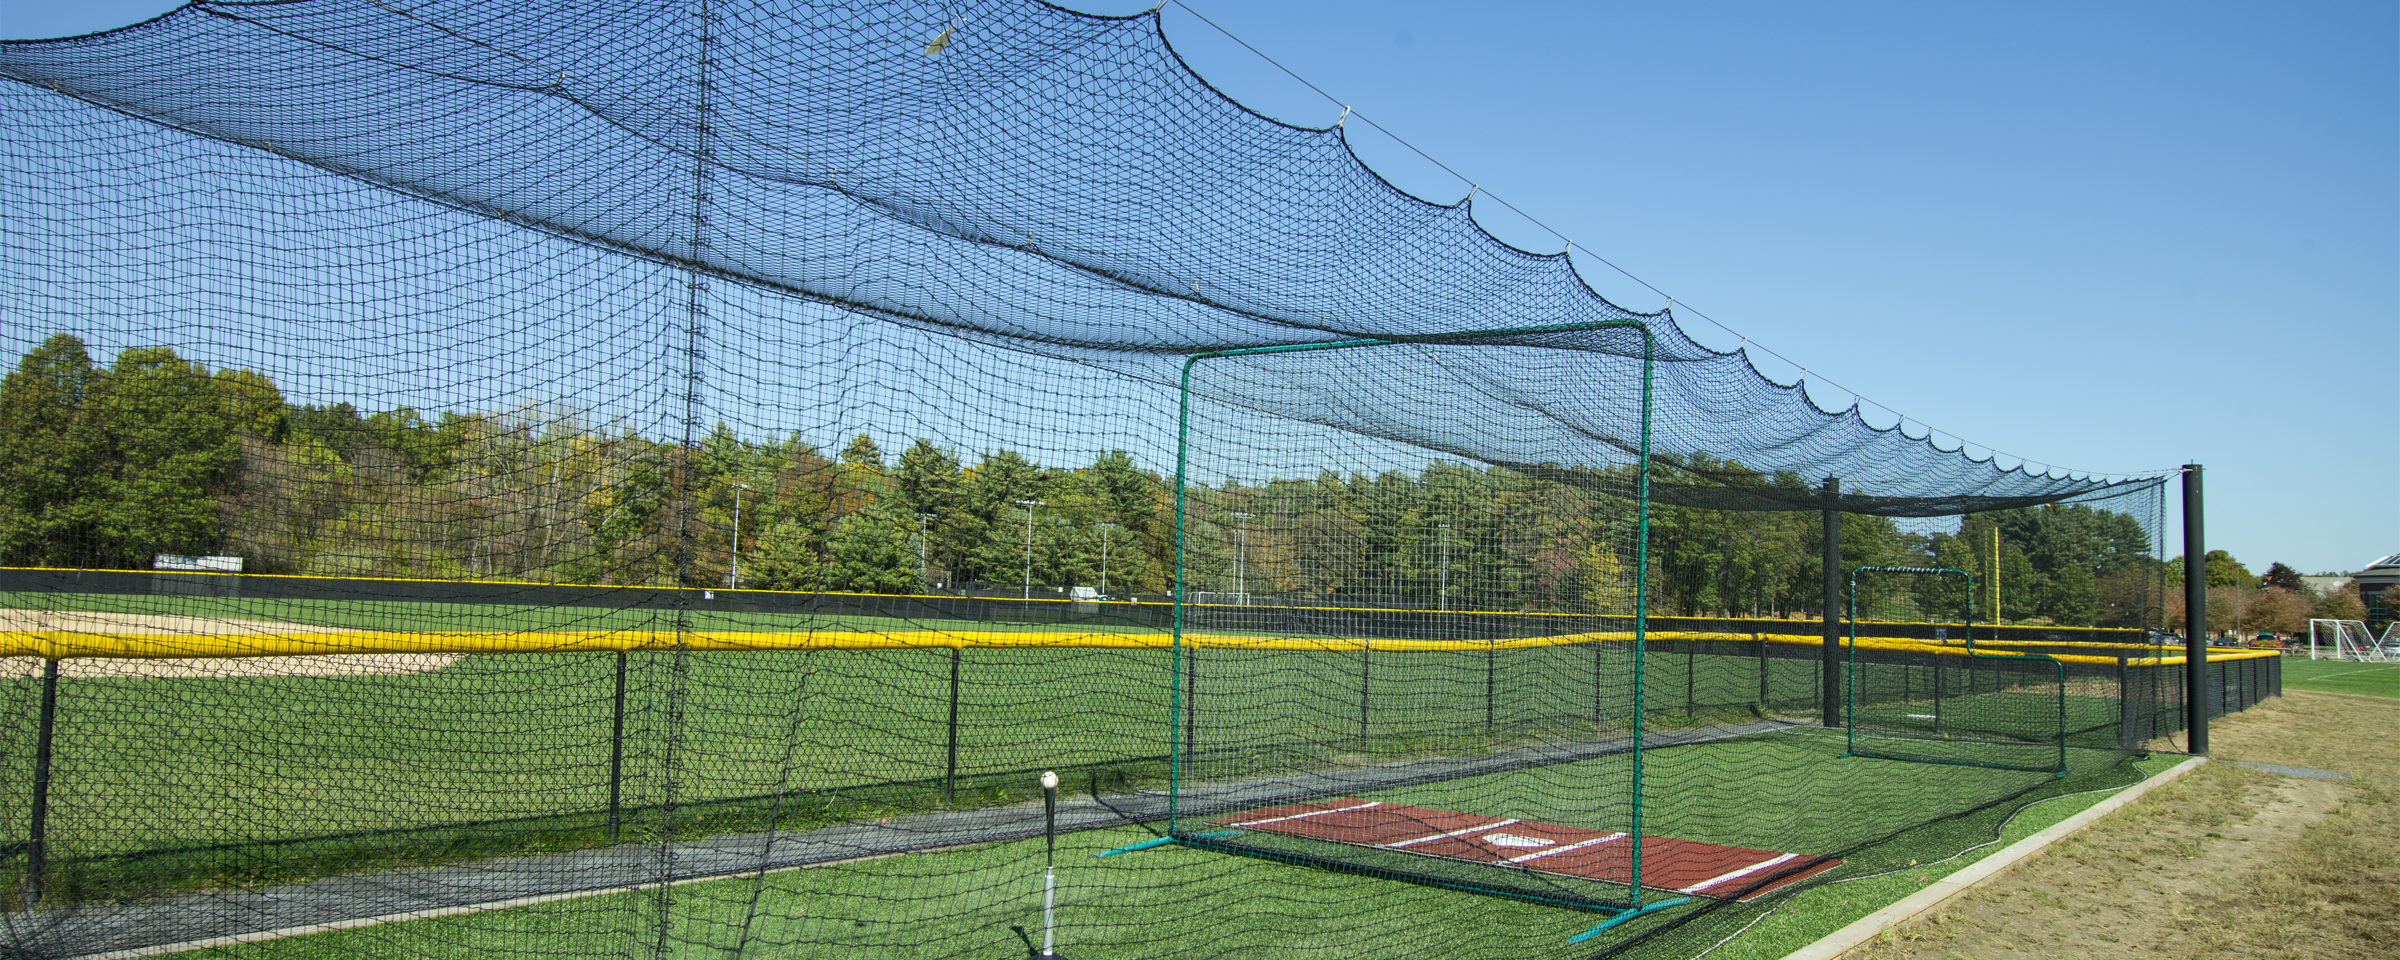 f21deda24 How Much Do Batting Cages Cost? | On Deck Sports Blog